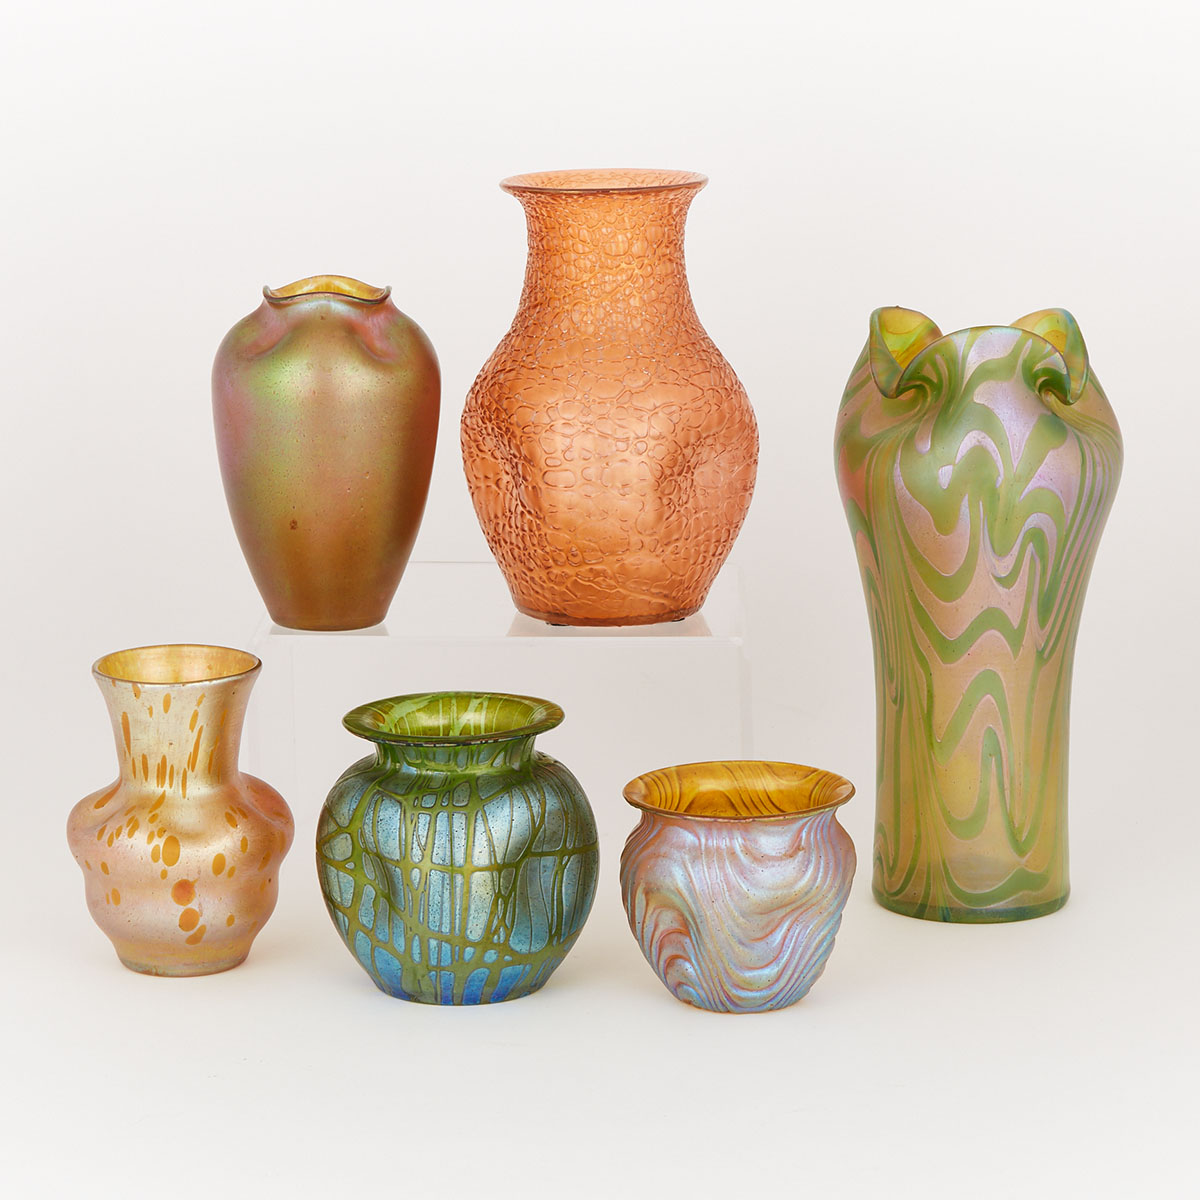 Six Bohemian Iridescent Coloured Glass Vases, early 20th century